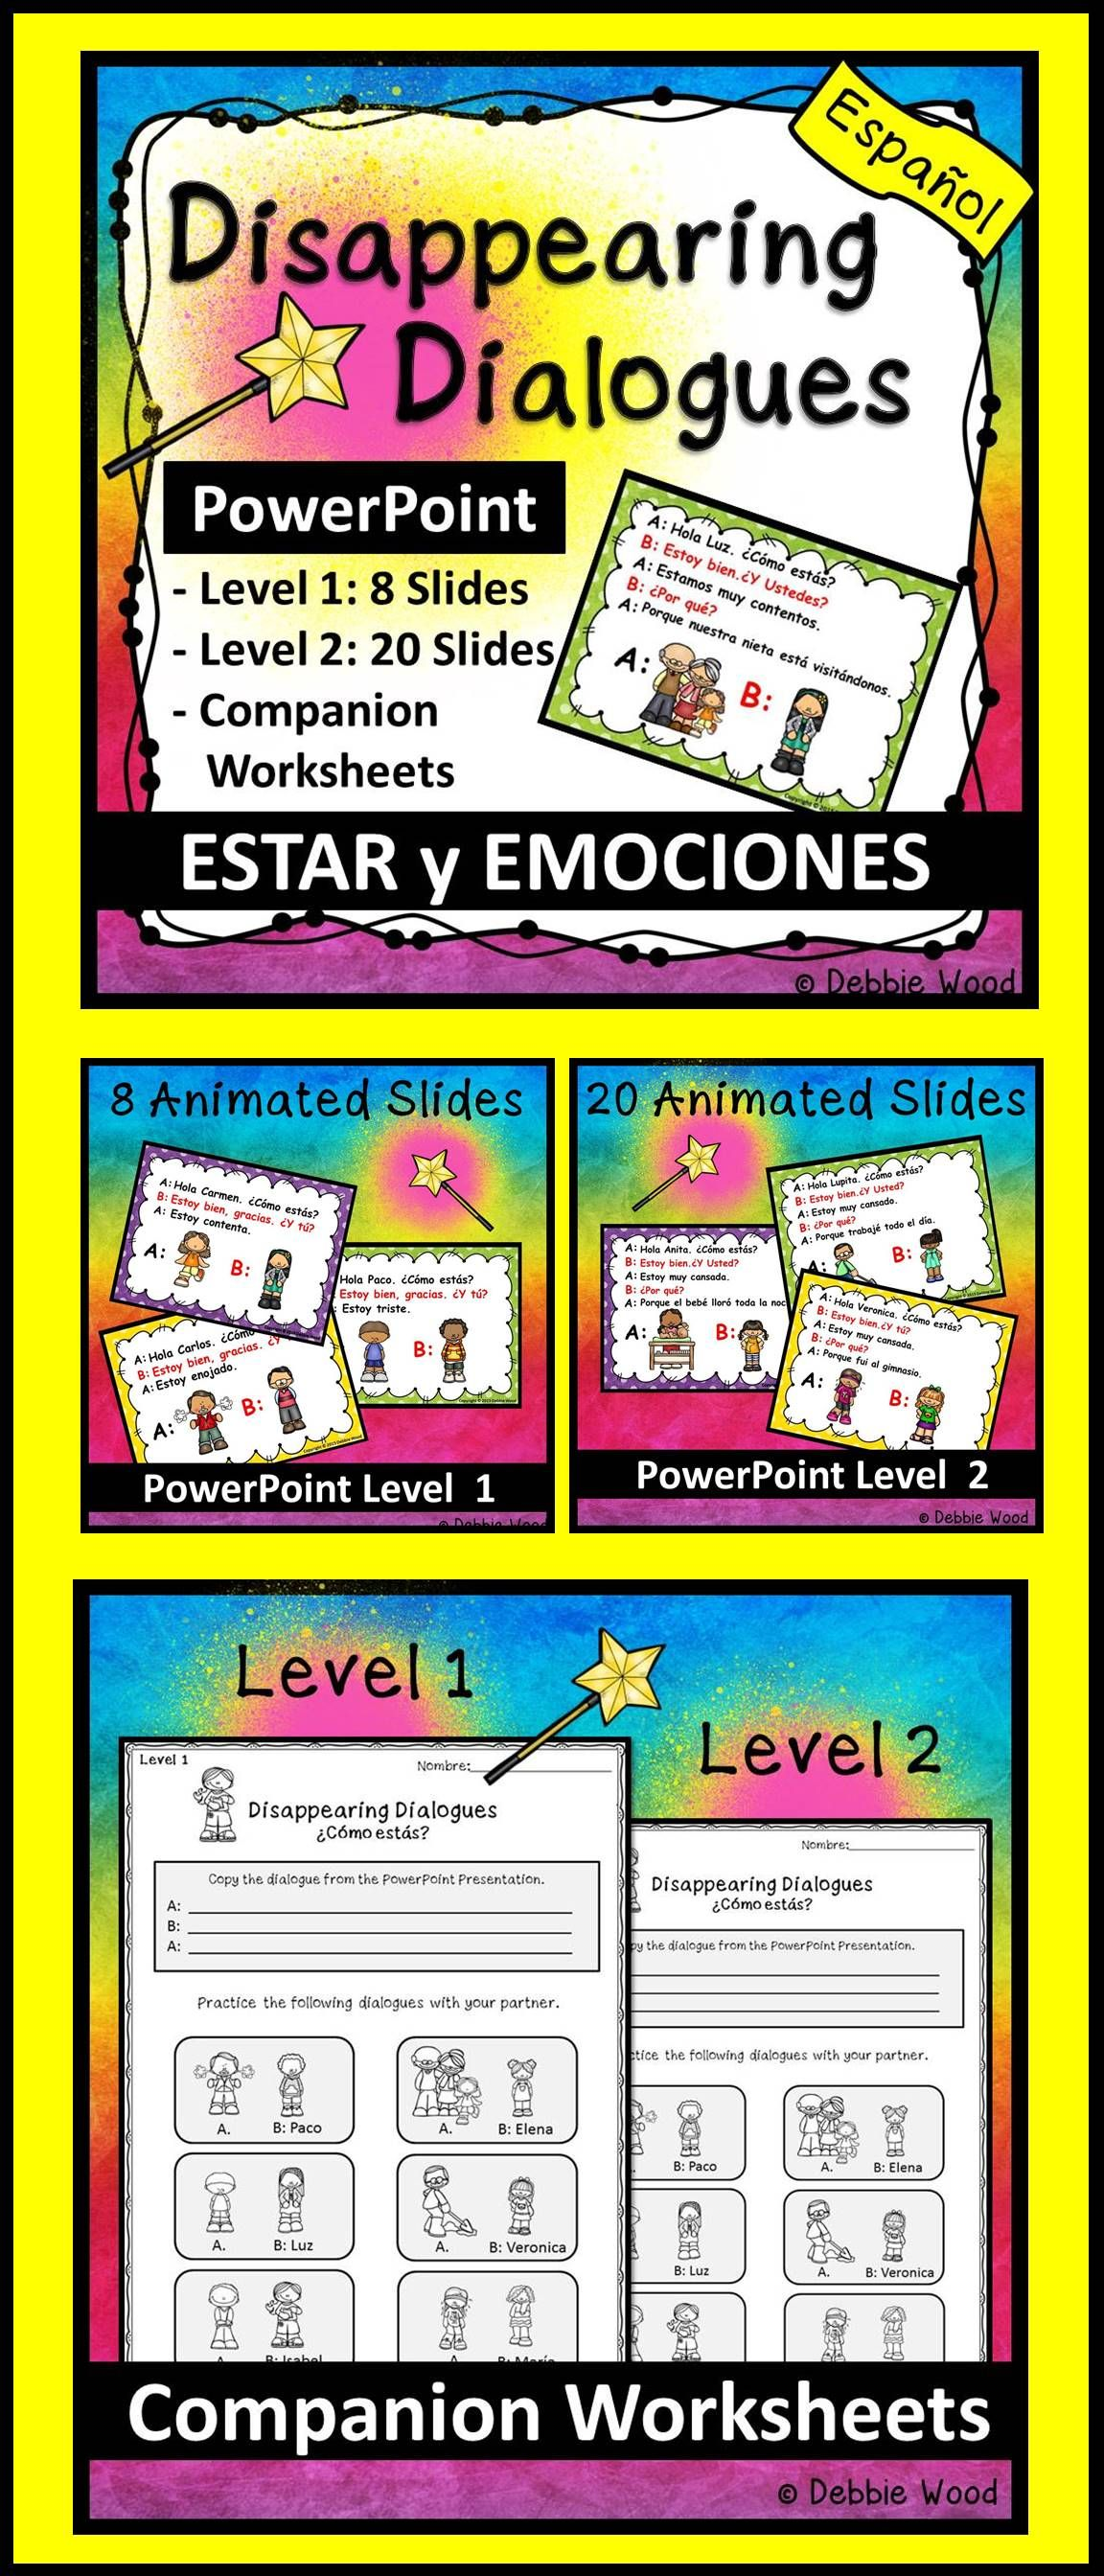 Disappearing Dialogues Are A Fun Way To Learn New Dialogues In Spanish This Lesson Inc How To Speak Spanish Spanish Lesson Plans Spanish Classroom Activities [ 2688 x 1152 Pixel ]